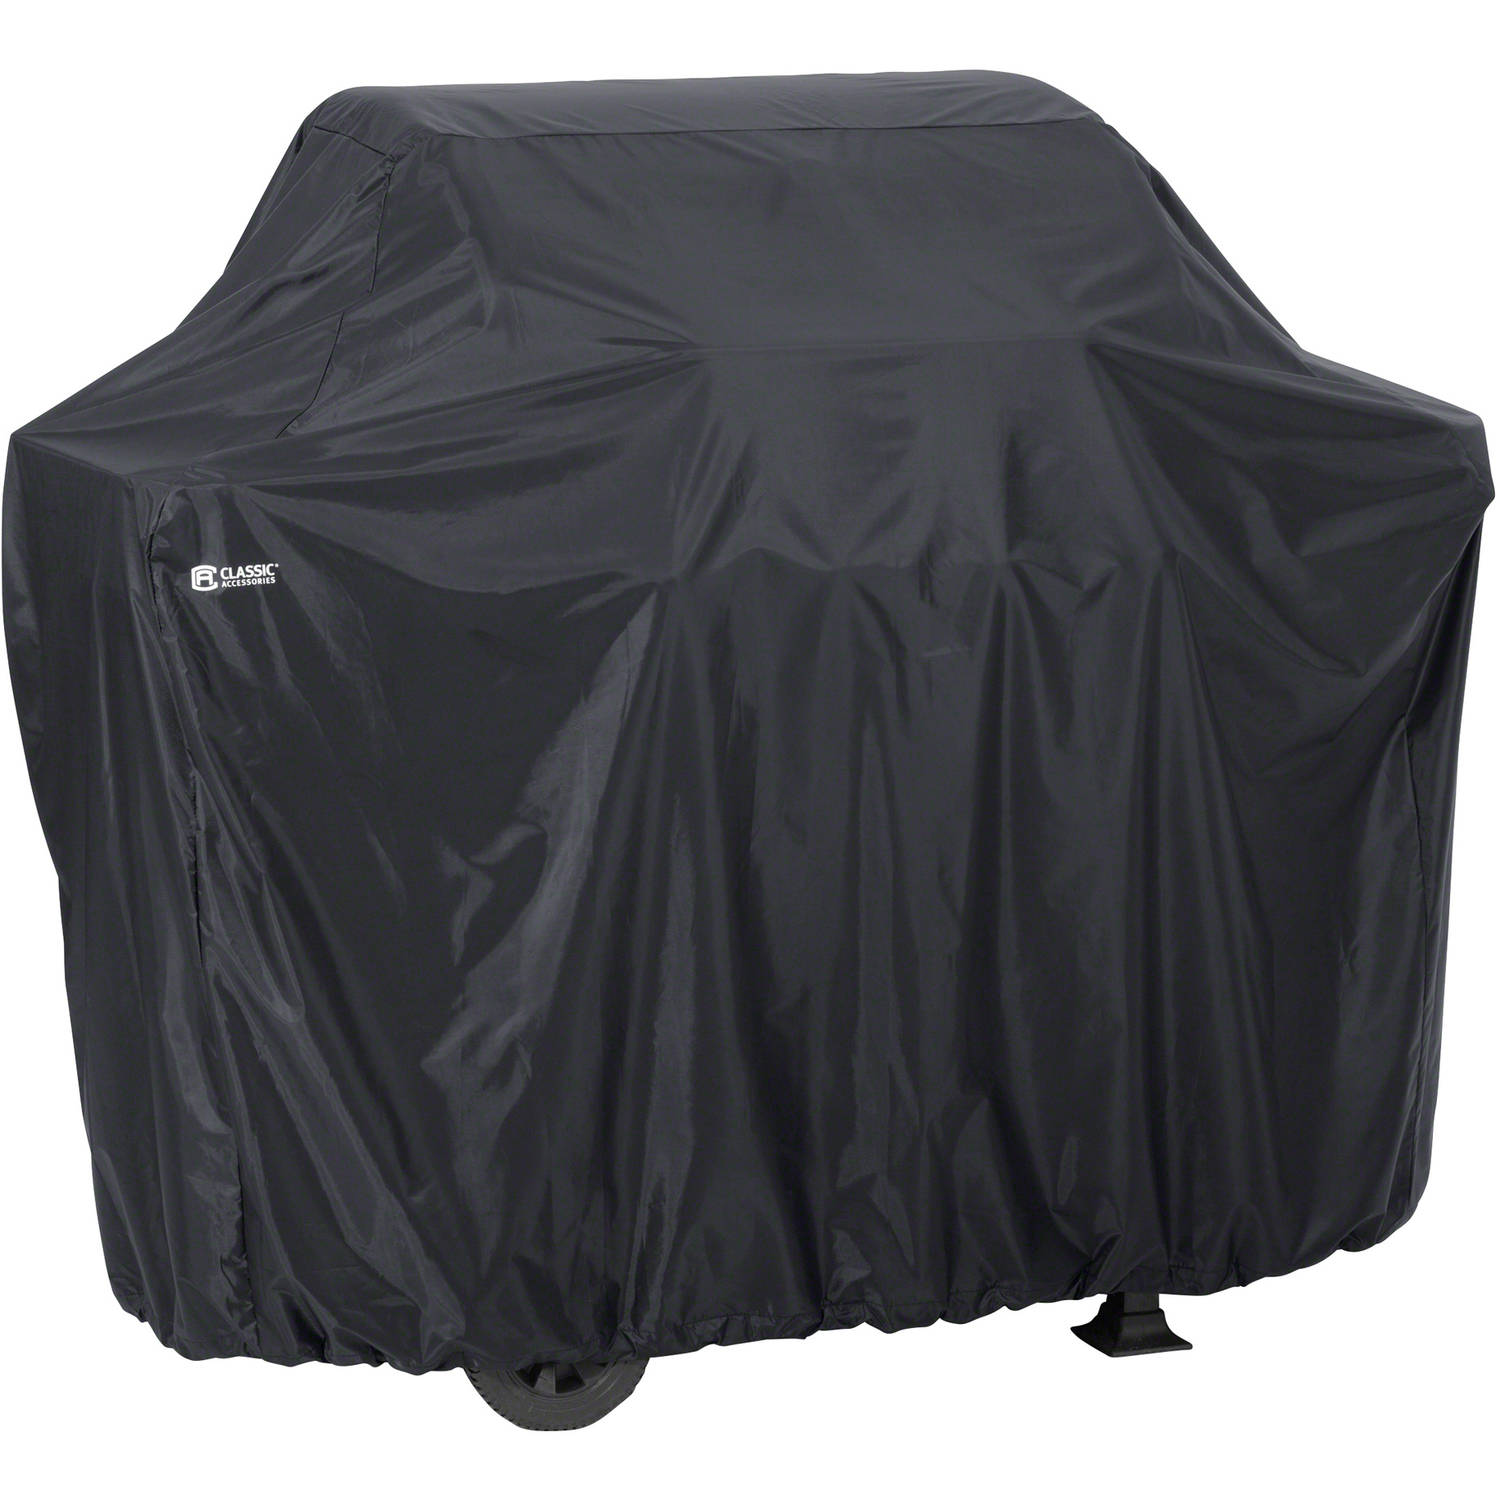 Classic Accessories Sodo BBQ Grill Cover, Black